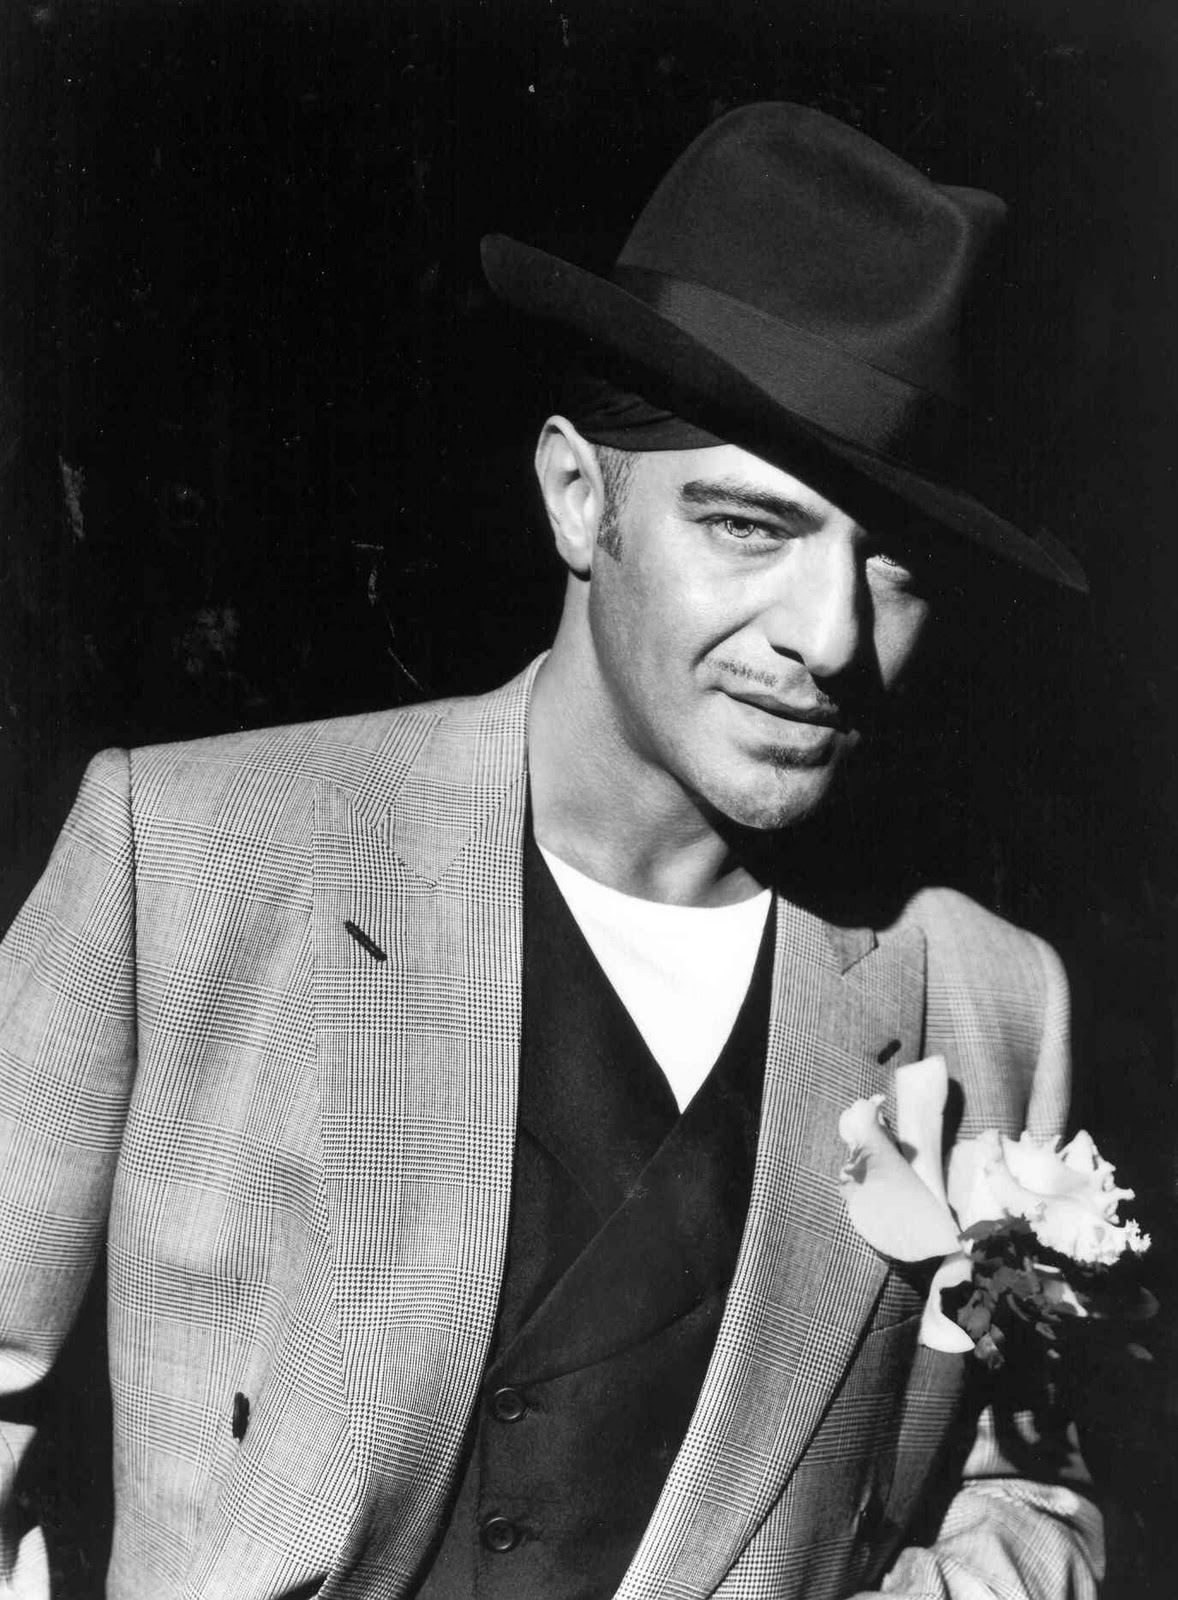 Fashion exhibitions 2017 - John Galliano Is The New Creative Director Of Maison